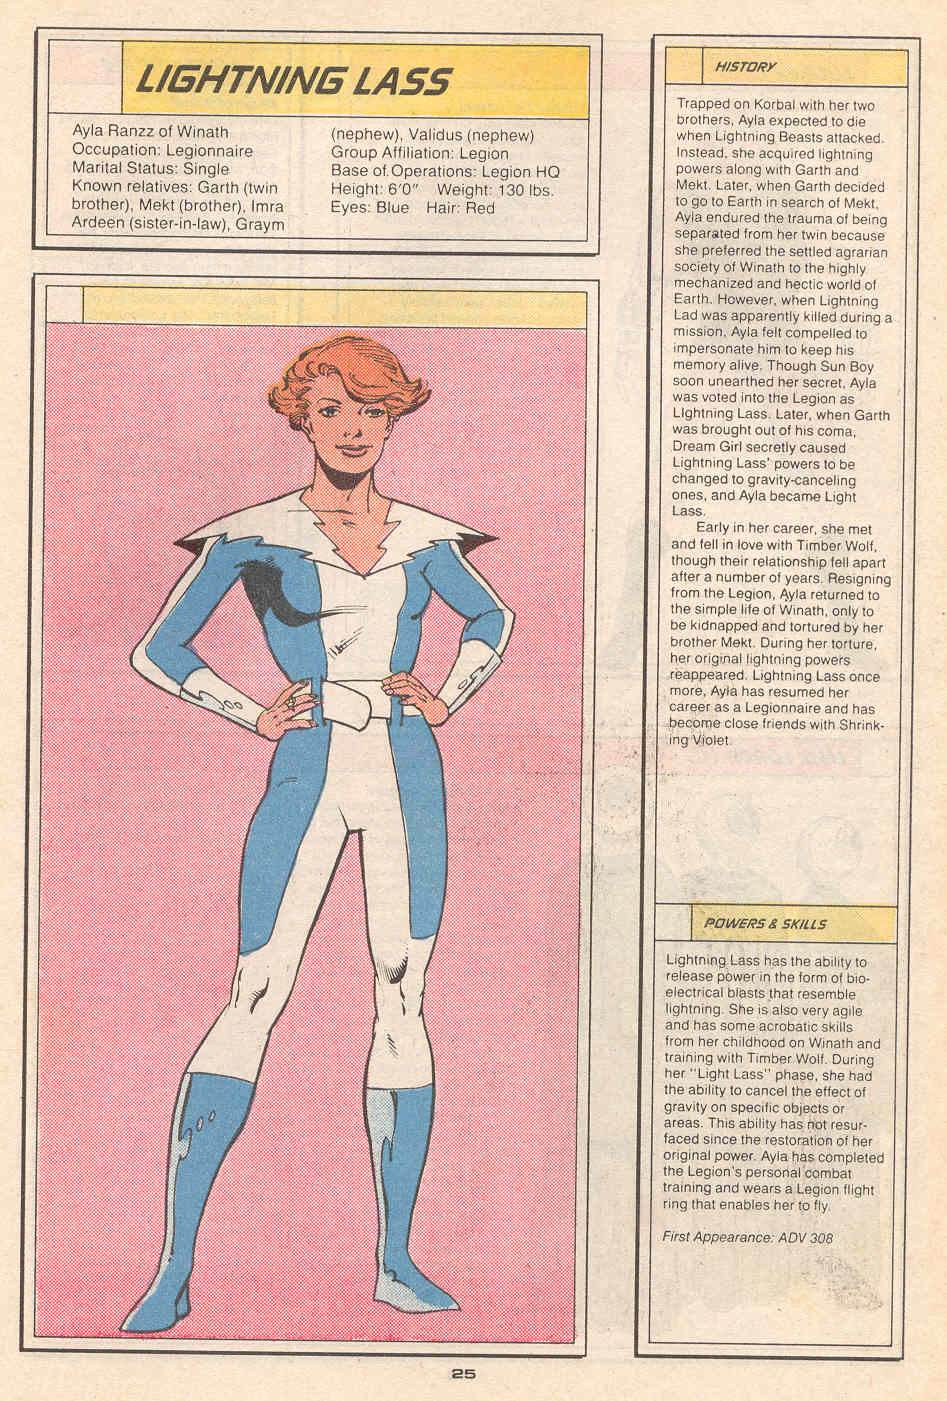 Lightning Lass by Greg LaRocque and Bob Smith - Who's Who in the Legion of Super-Heroes #4